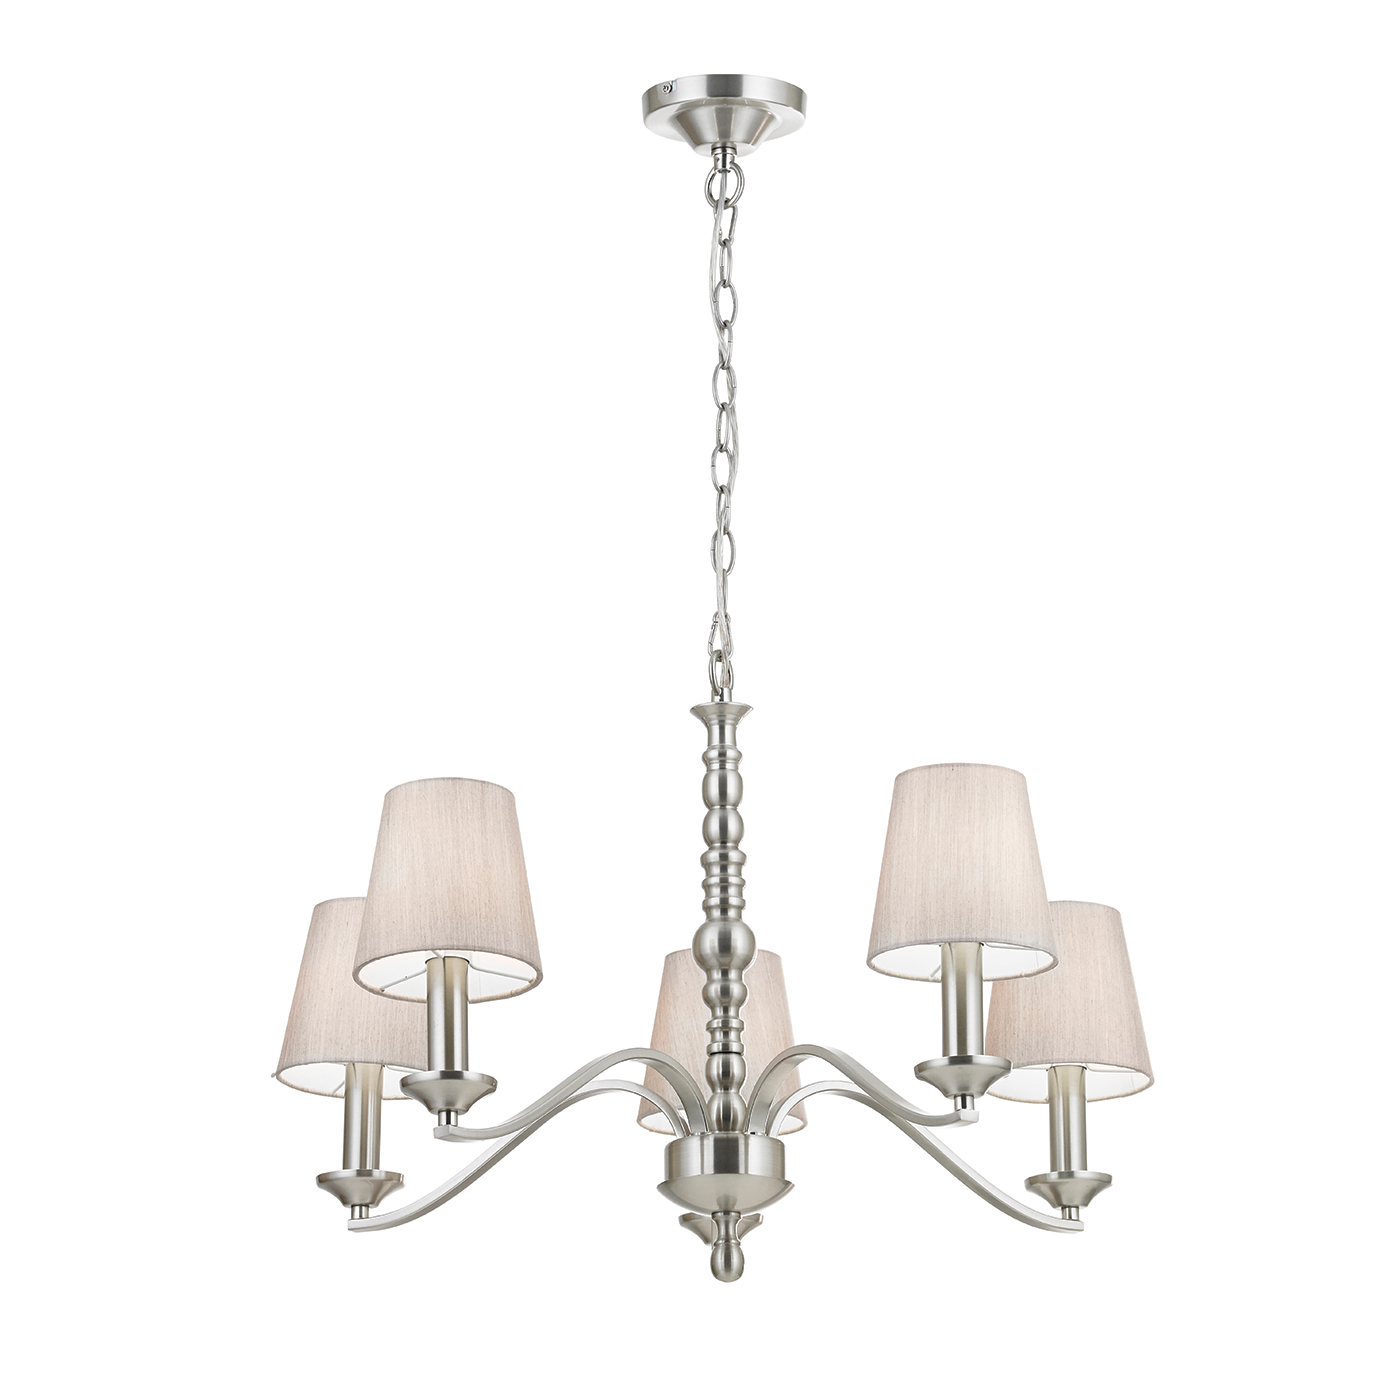 Endon Astaire chandelier 5x 40W Satin nickel effect plate & natural tc fabric